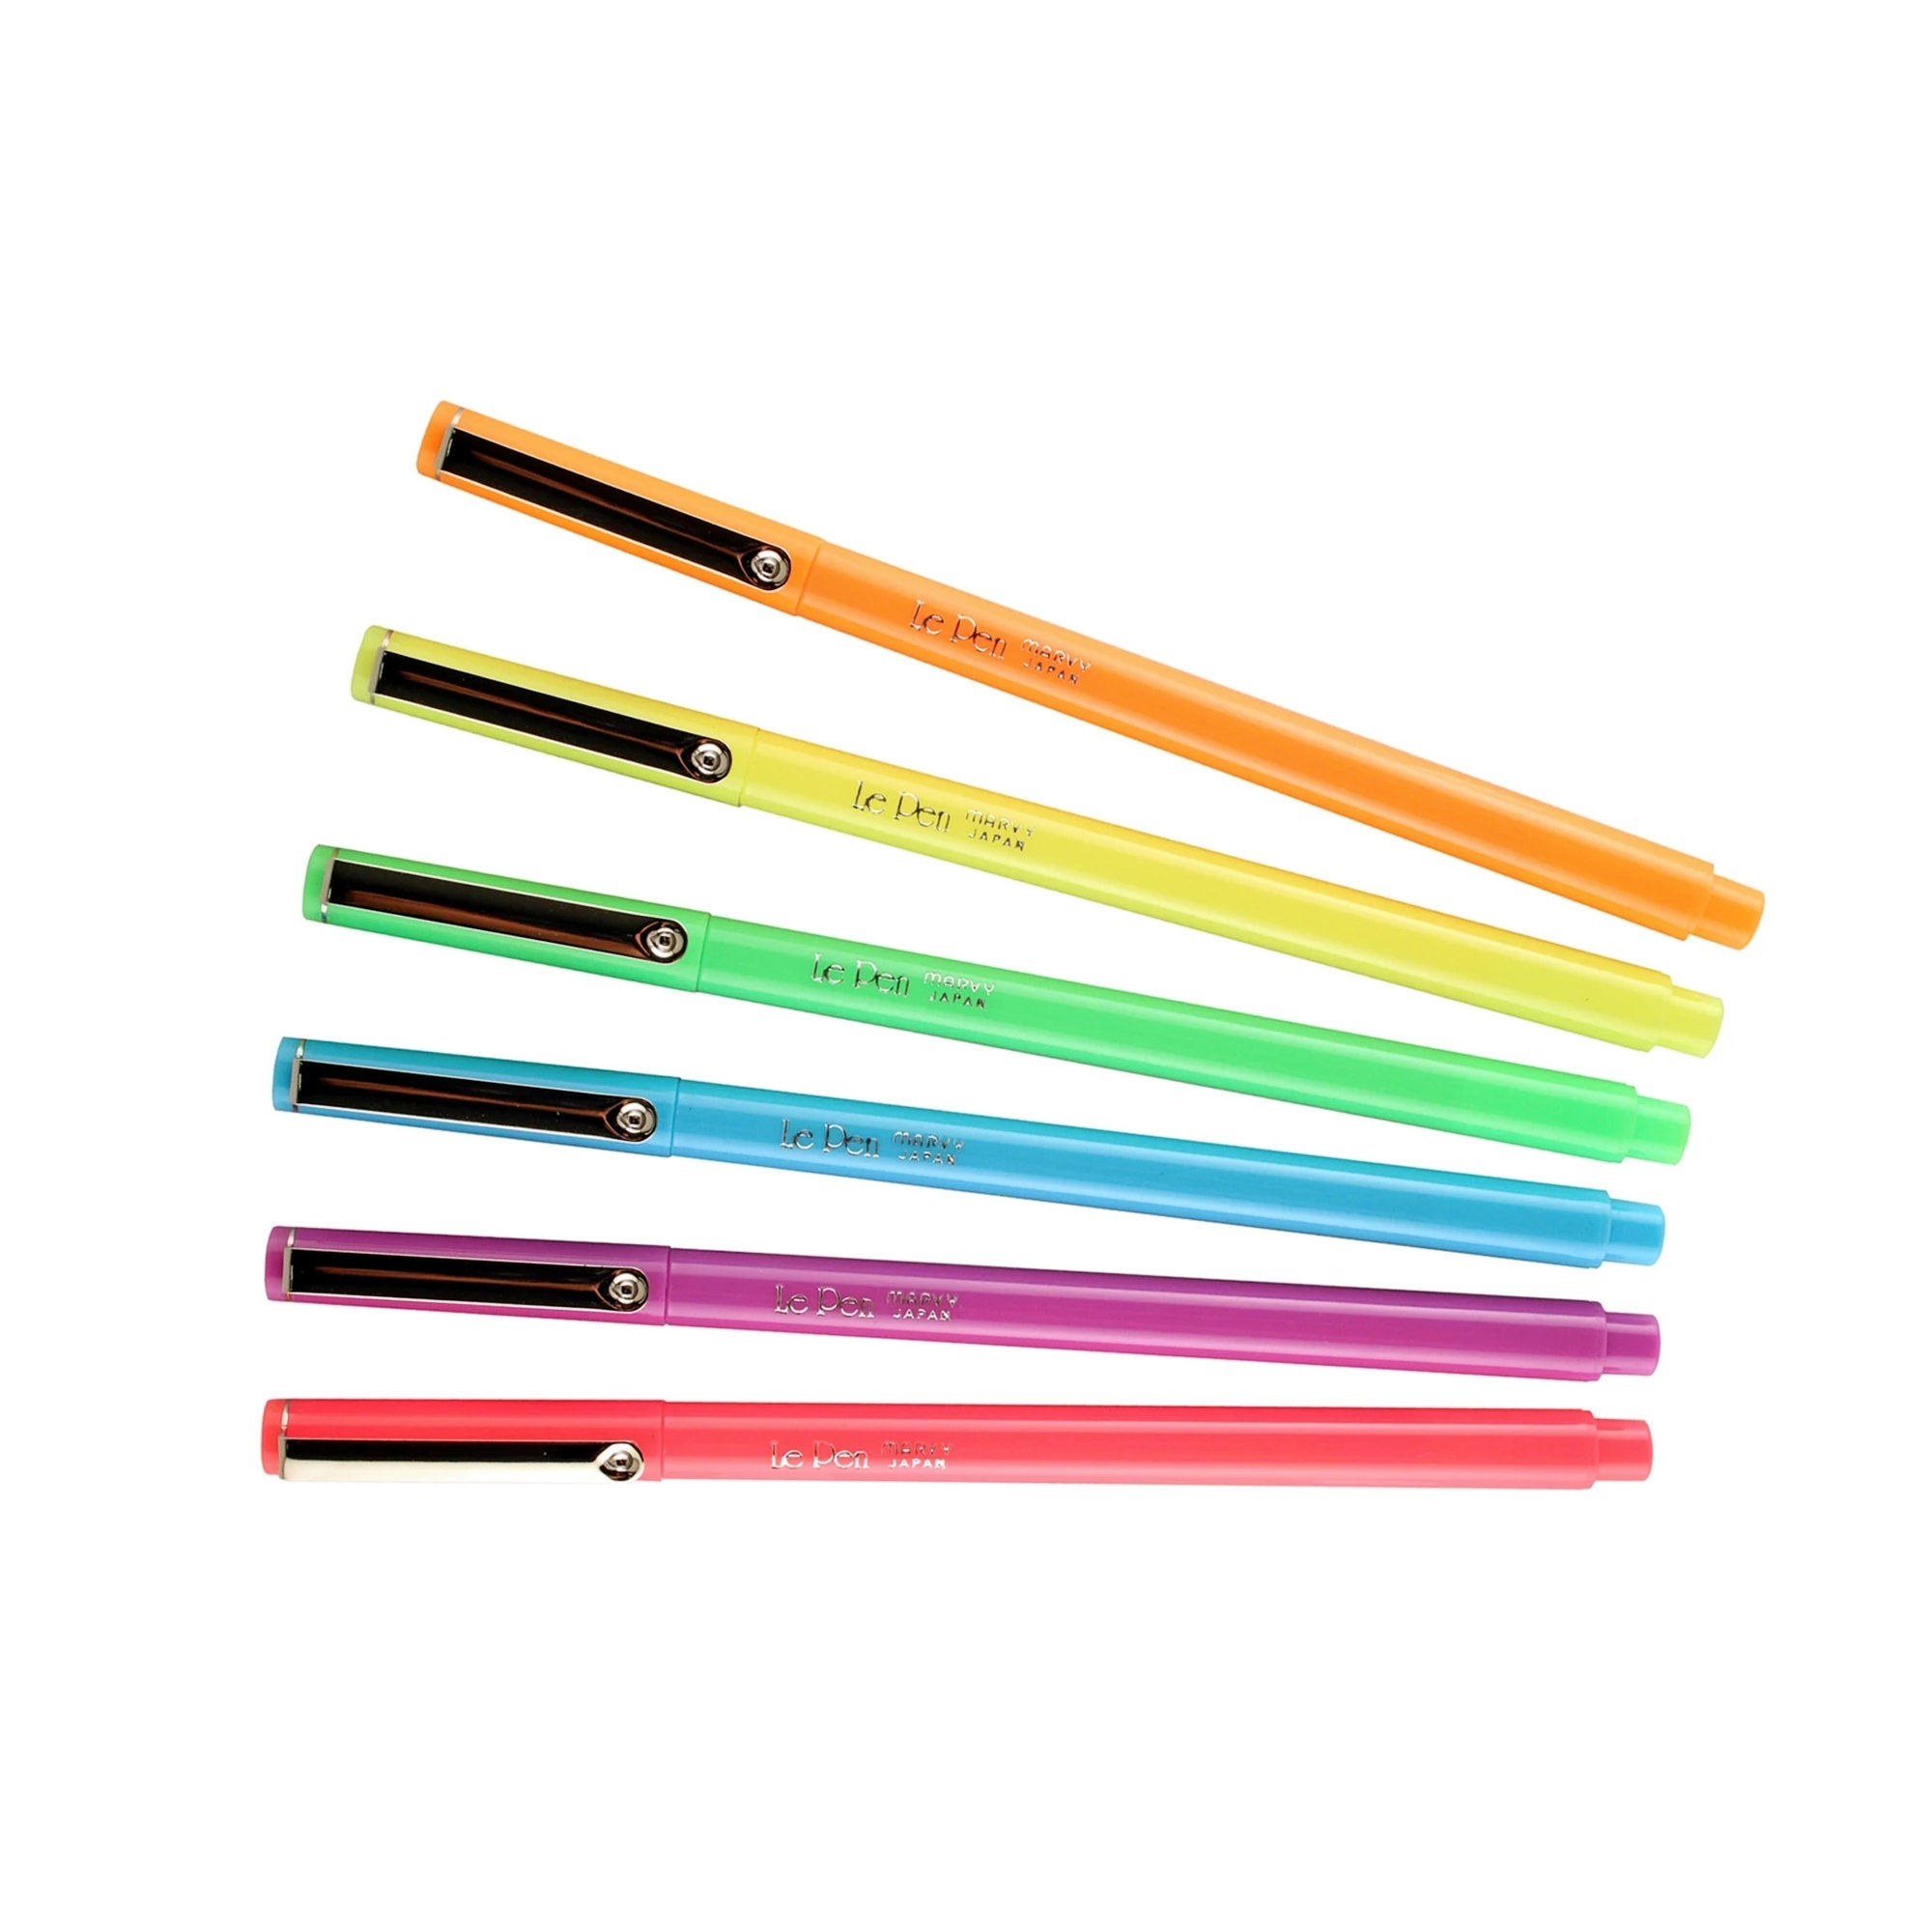 Marvy Le Pen NEON Set Fluorescent PINK 0.3mm 4300-4F | Single Pen or Complete Set - The Stationery Life!